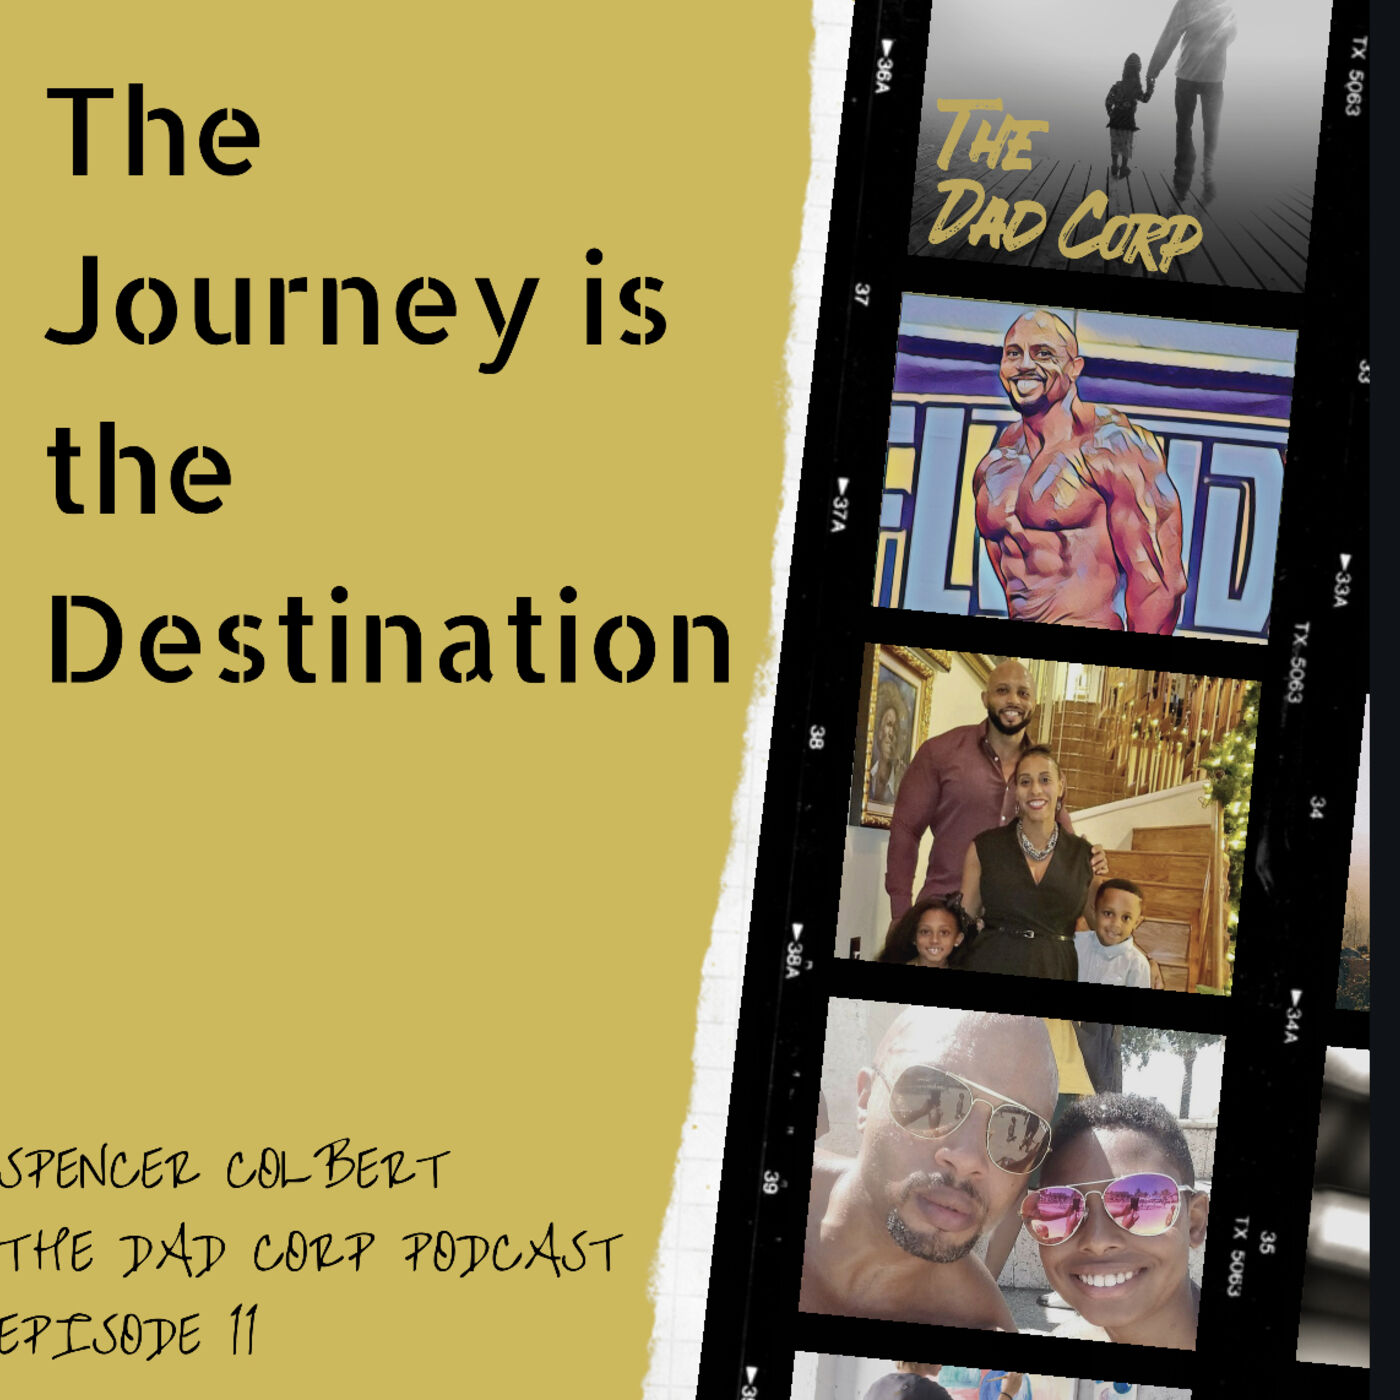 The Journey is the Destination with Spencer Colbert, Entrepreneur / Marketing Executive / Bodybuilder